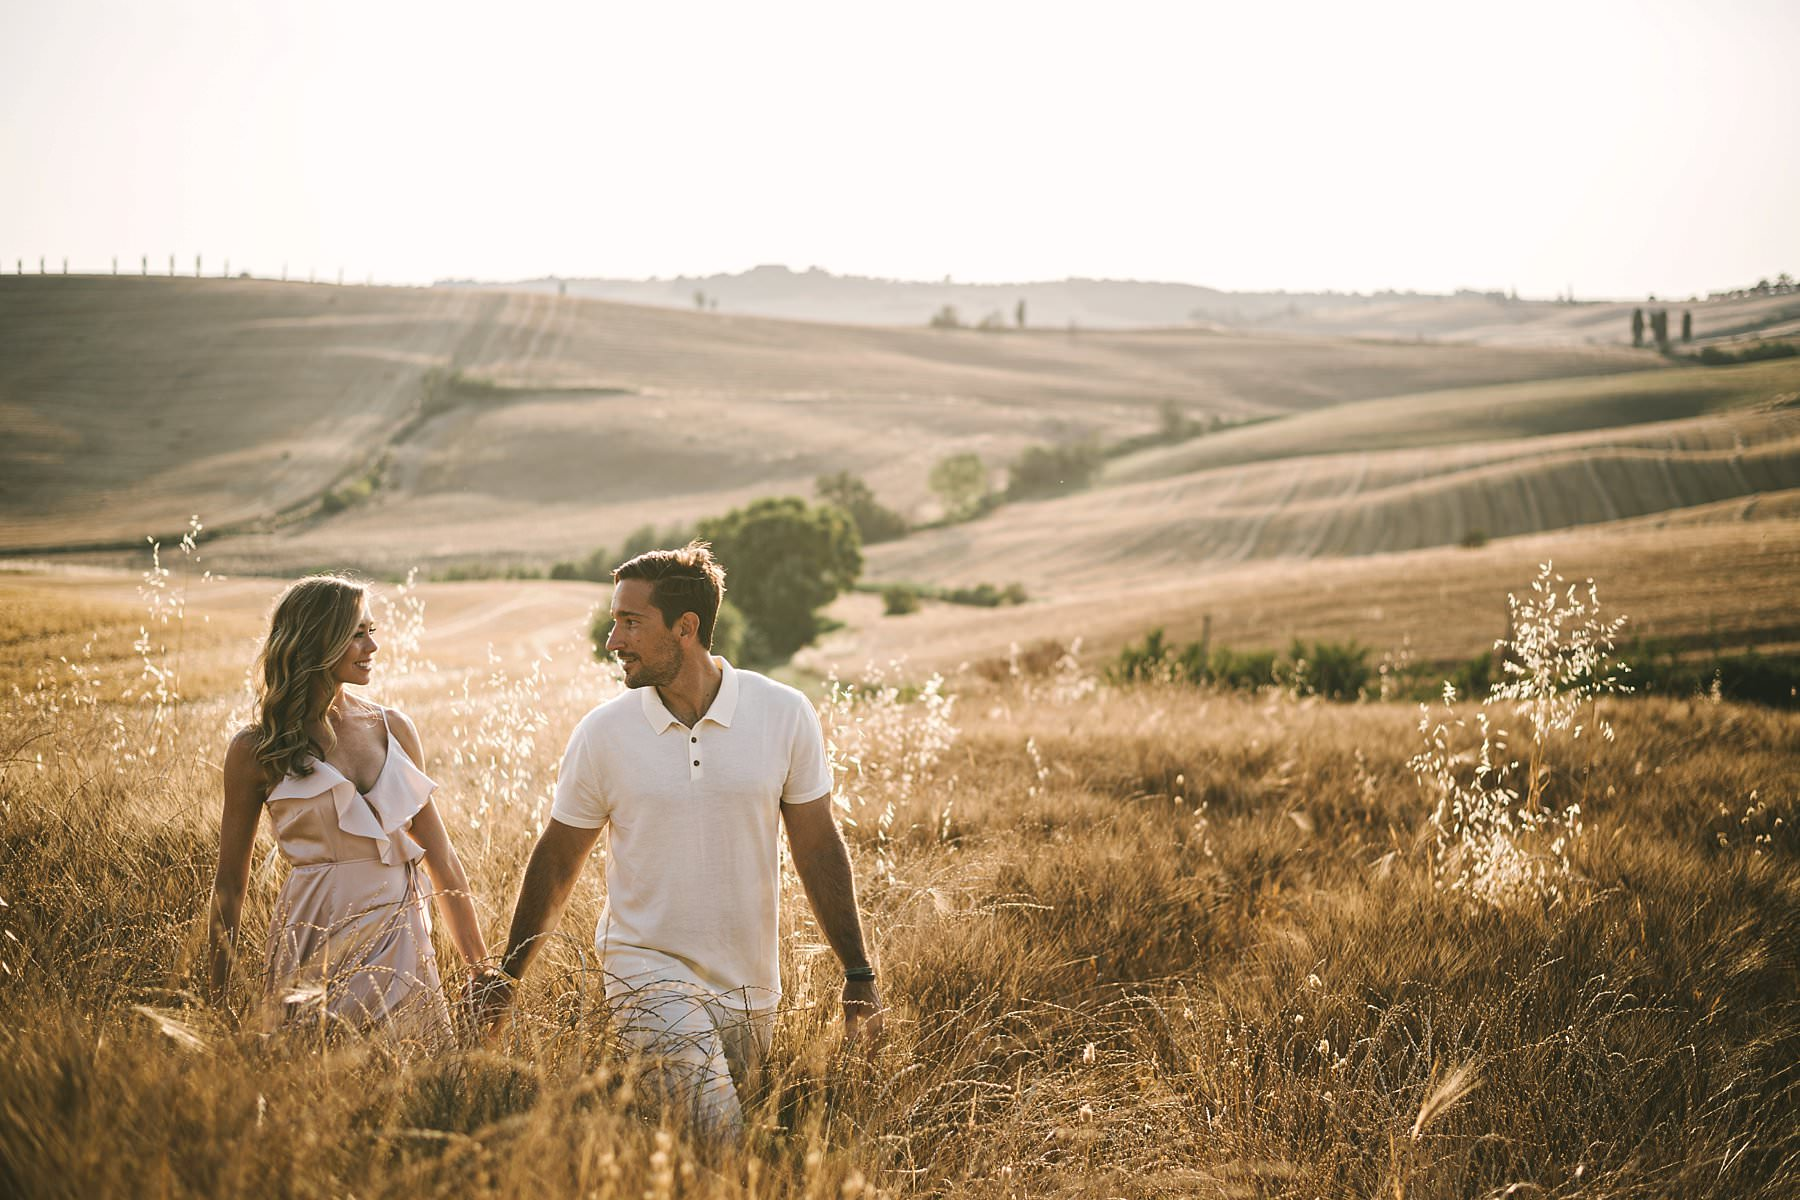 Gorgeous couple elopement wedding photo shoot in Val D'Orcia area of Tuscany near Pienza